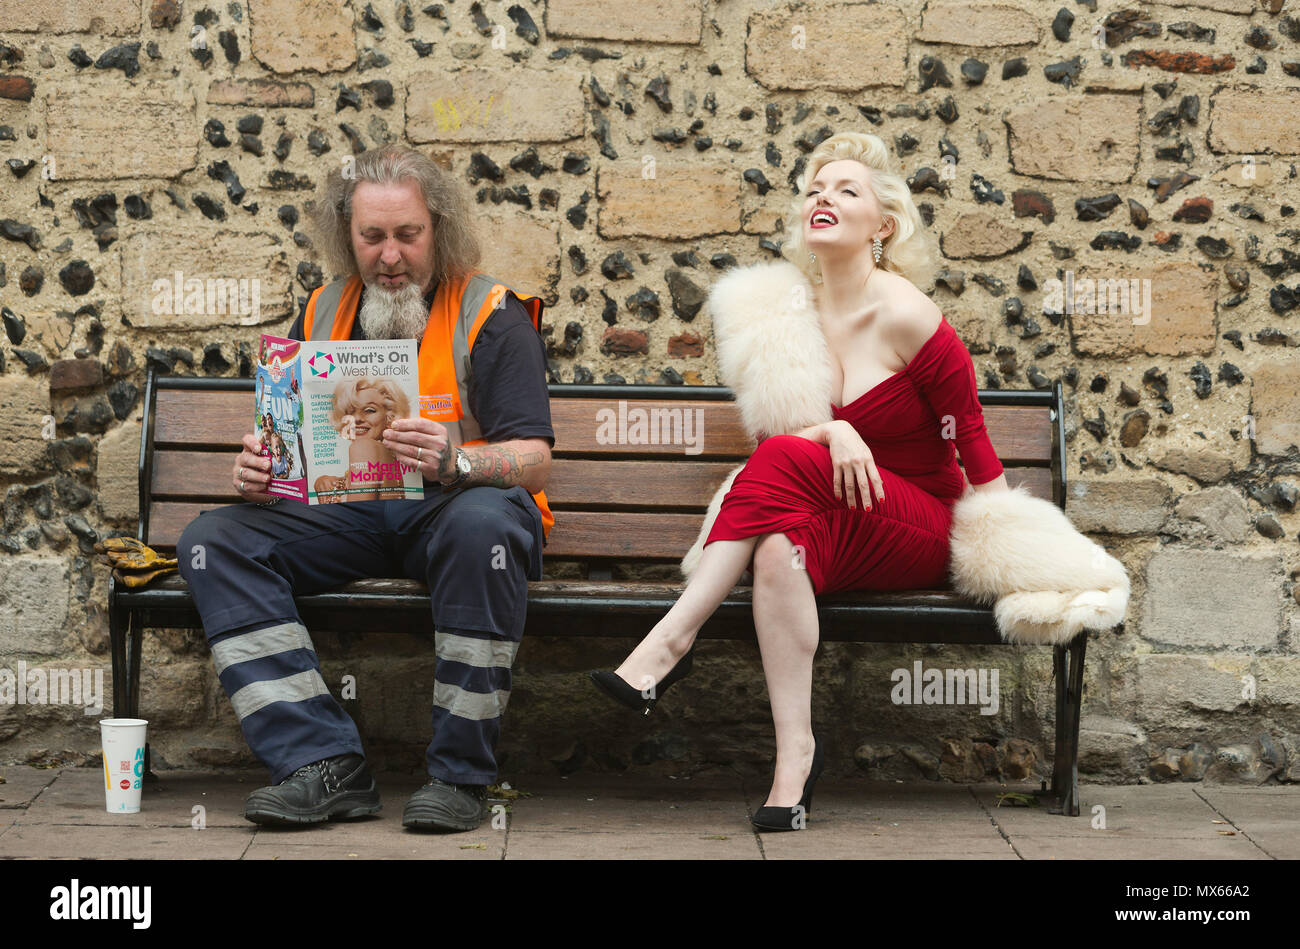 Bury St Edmunds, UK. 2nd Jun, 2018. Graham Silcock reads about the latest exhibition unaware he is seated beside the world's leading Marilyn Monroe tribute artist, Suzie Kennedy before she opened the 'Timeless' exhibition at Moyses Hall, Bury St Edmunds, which includes stunning images from Marilyn Monroe's very earliest days as a model, behind-the-scenes captures from her film-work, breathtaking location and studio work and emotive candid images that showcase her true personality in a unique and engaging way. Credit: Keith mindham/Alamy Live News Stock Photo